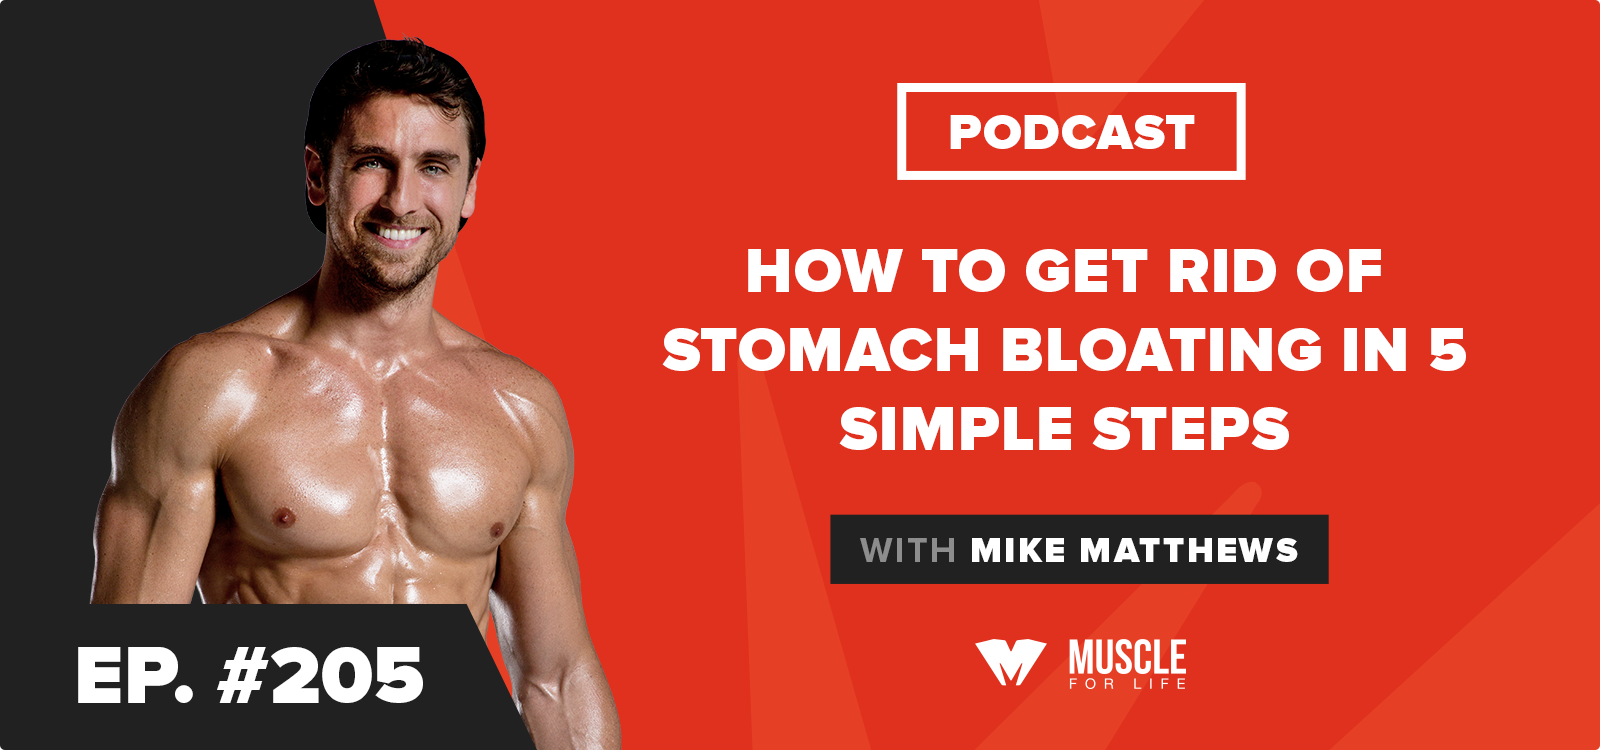 How to Get Rid of Stomach Bloating in 5 Simple Steps